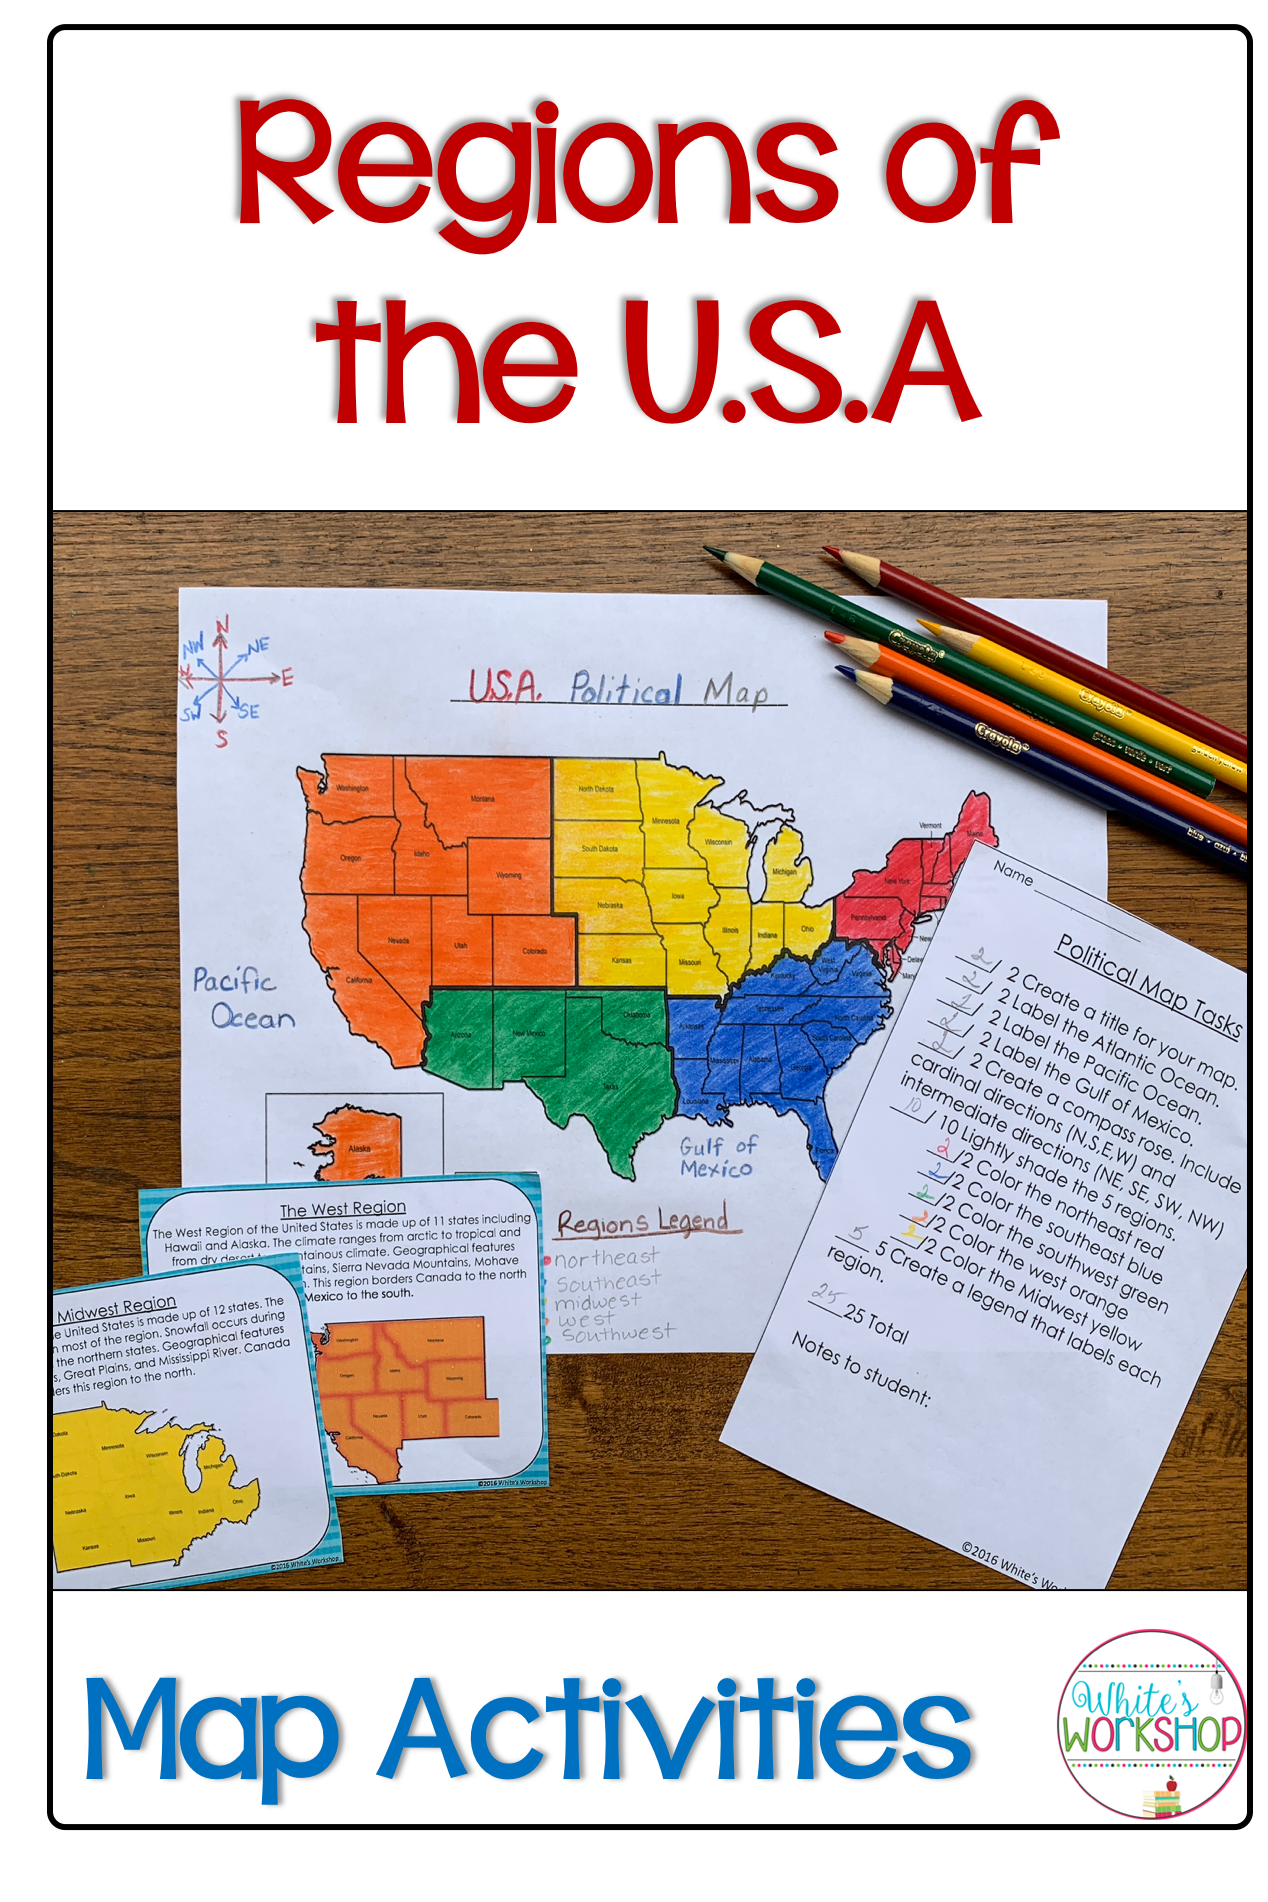 United States Map Activities.Regions Of The United States Map Activities White S Workshop Map